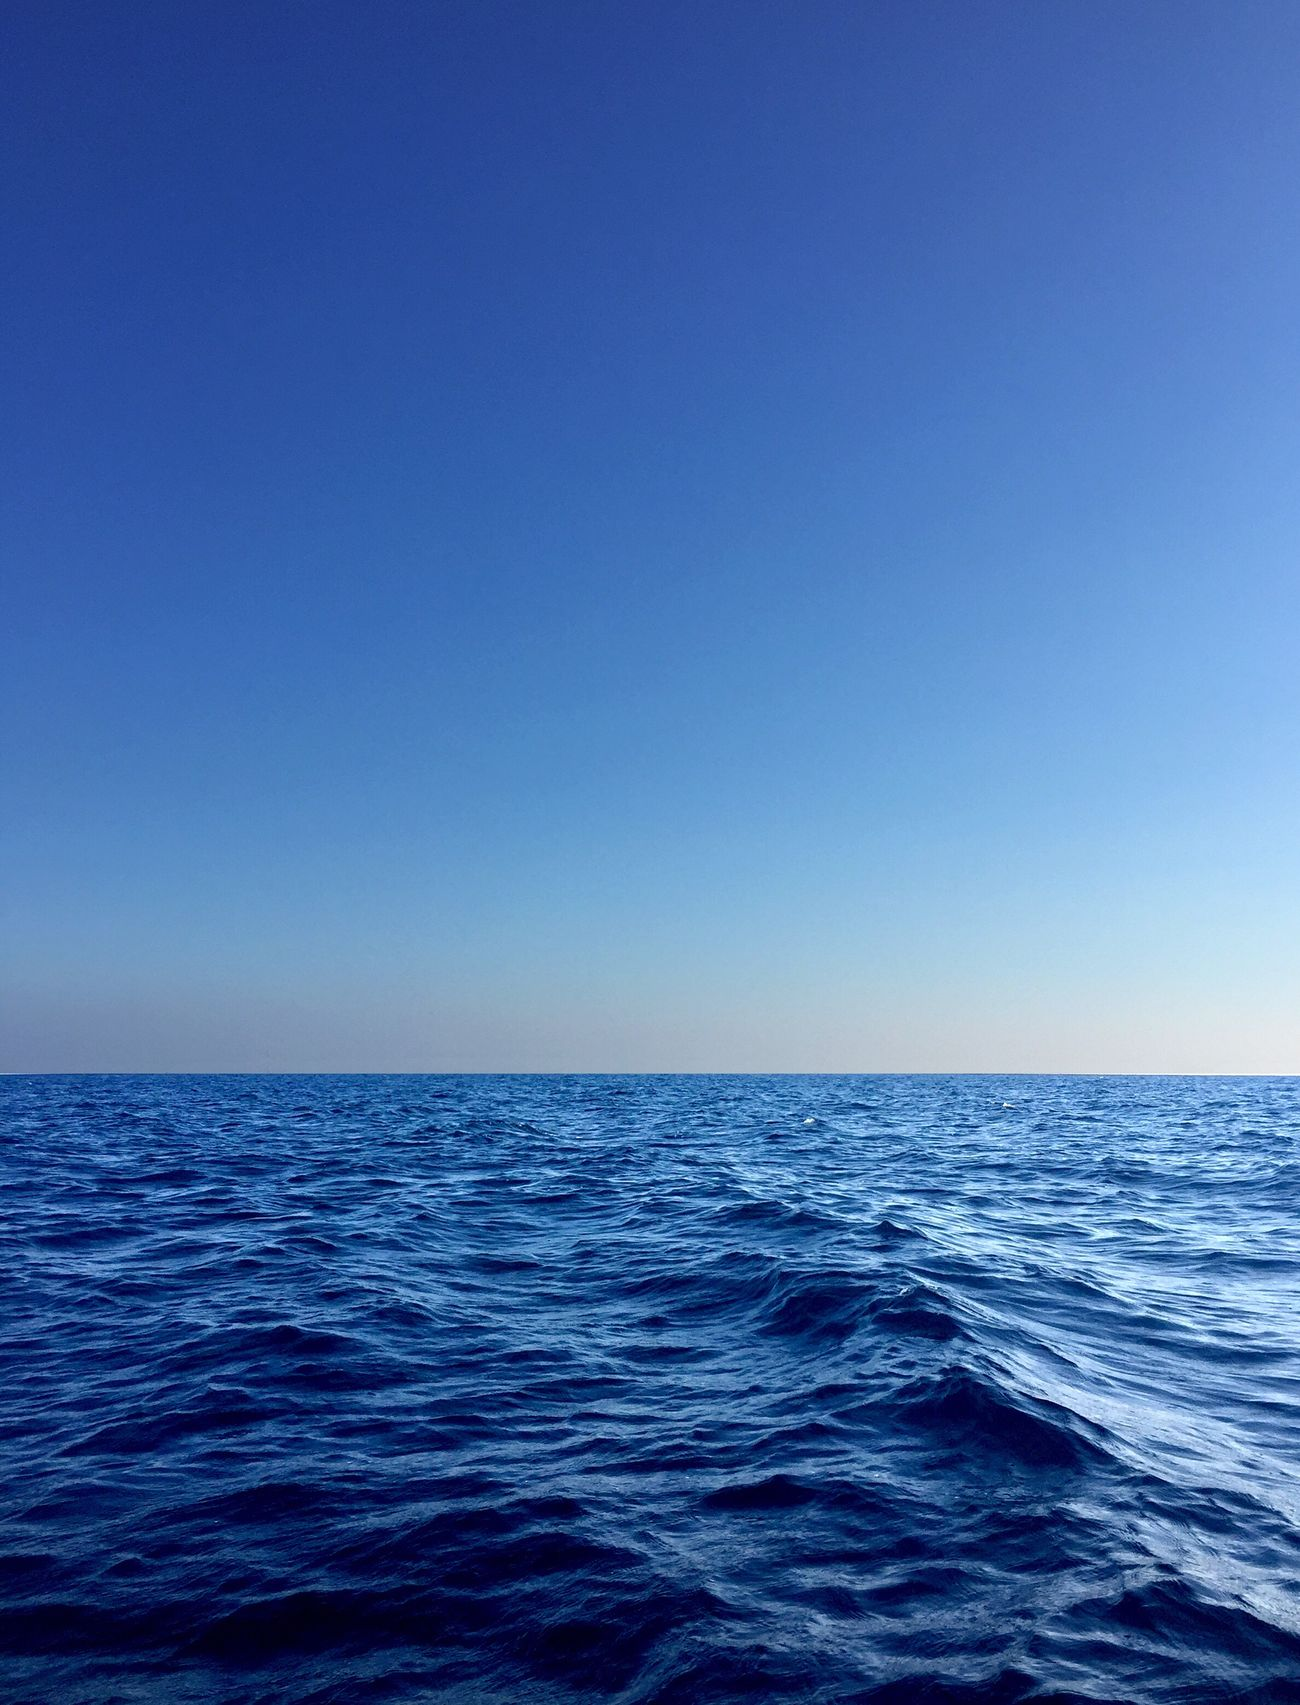 Blue Sea Sea And Sky Horizon Over Water Seascape Rippled Water Clear Sky Beauty In Nature Blue Sky Nature Getting Inspired